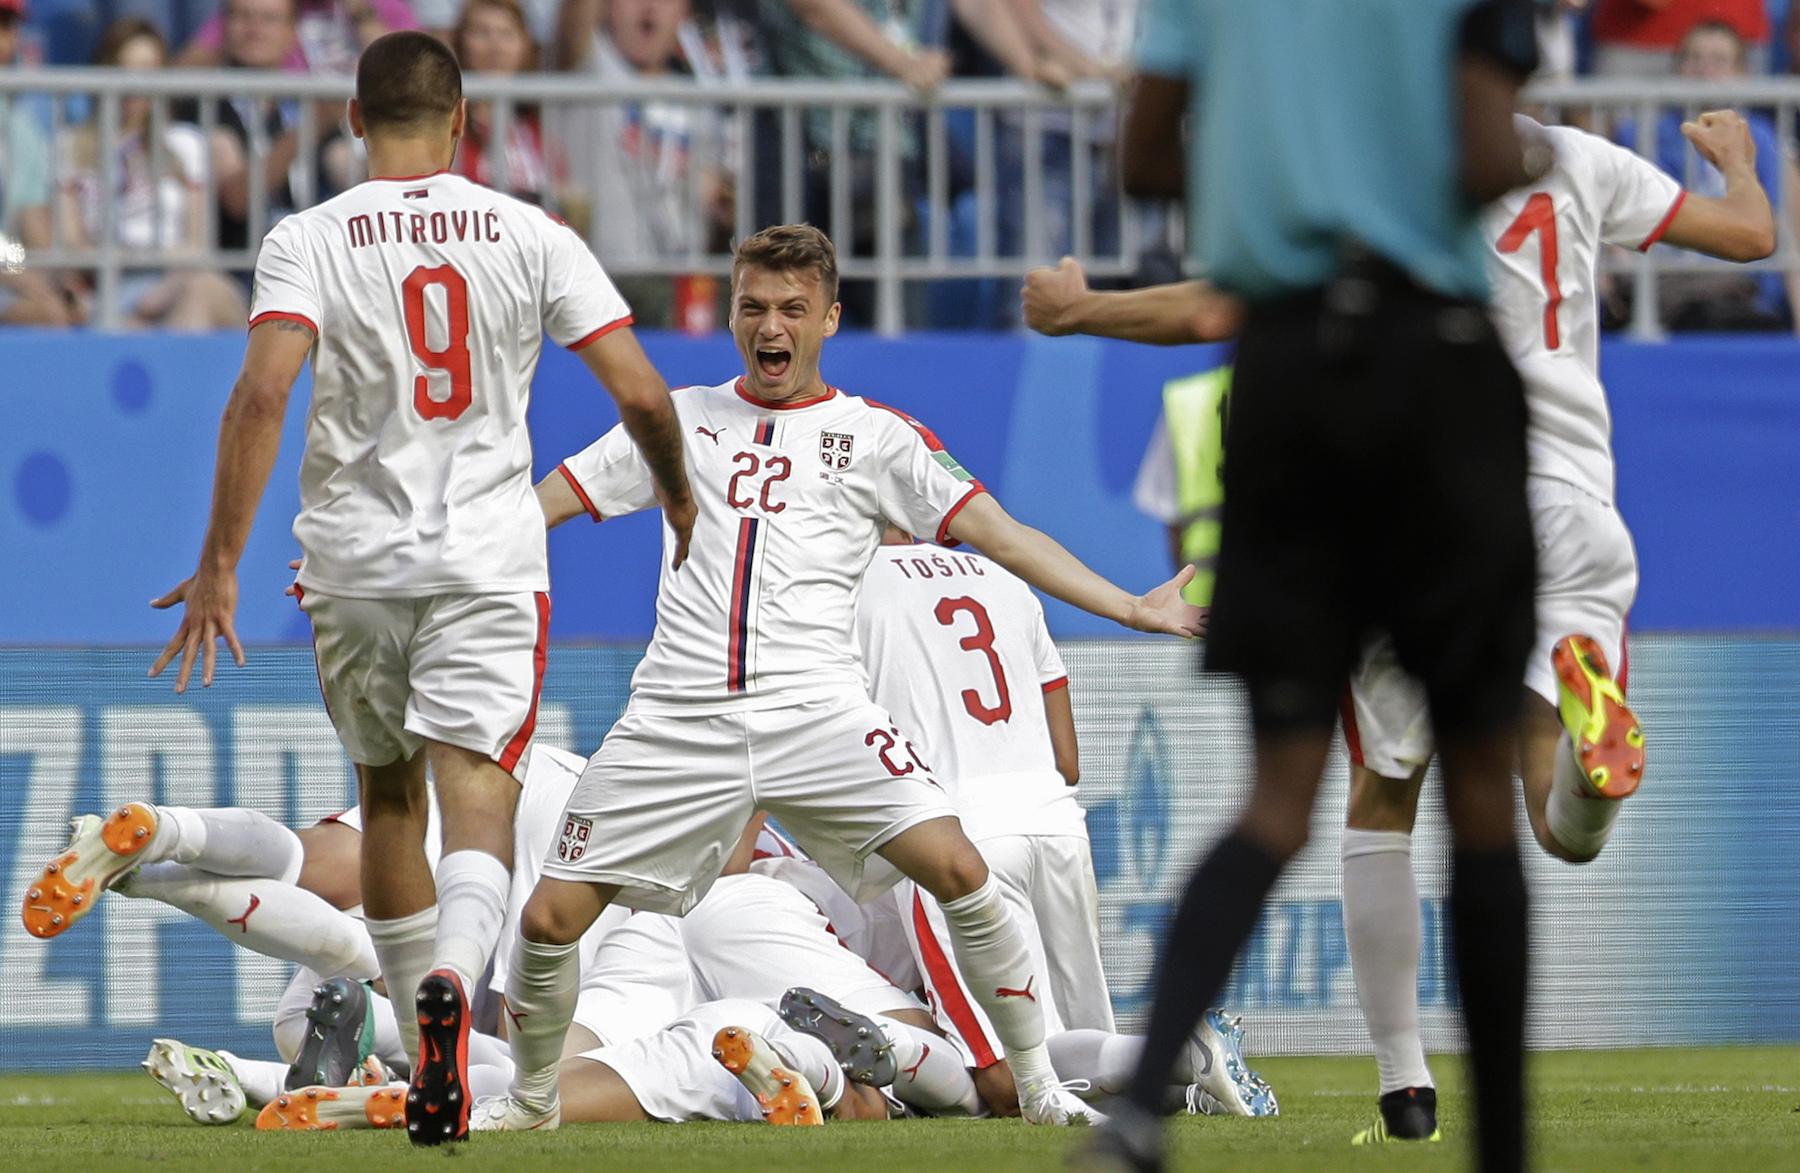 <div class='meta'><div class='origin-logo' data-origin='AP'></div><span class='caption-text' data-credit='AP Photo/Natacha Pisarenko'>Serbia's Adem Ljajic, centre, celebrates after teammate Aleksandar Kolarov scored the opening goal during the group E match between Costa Rica and Serbia.</span></div>